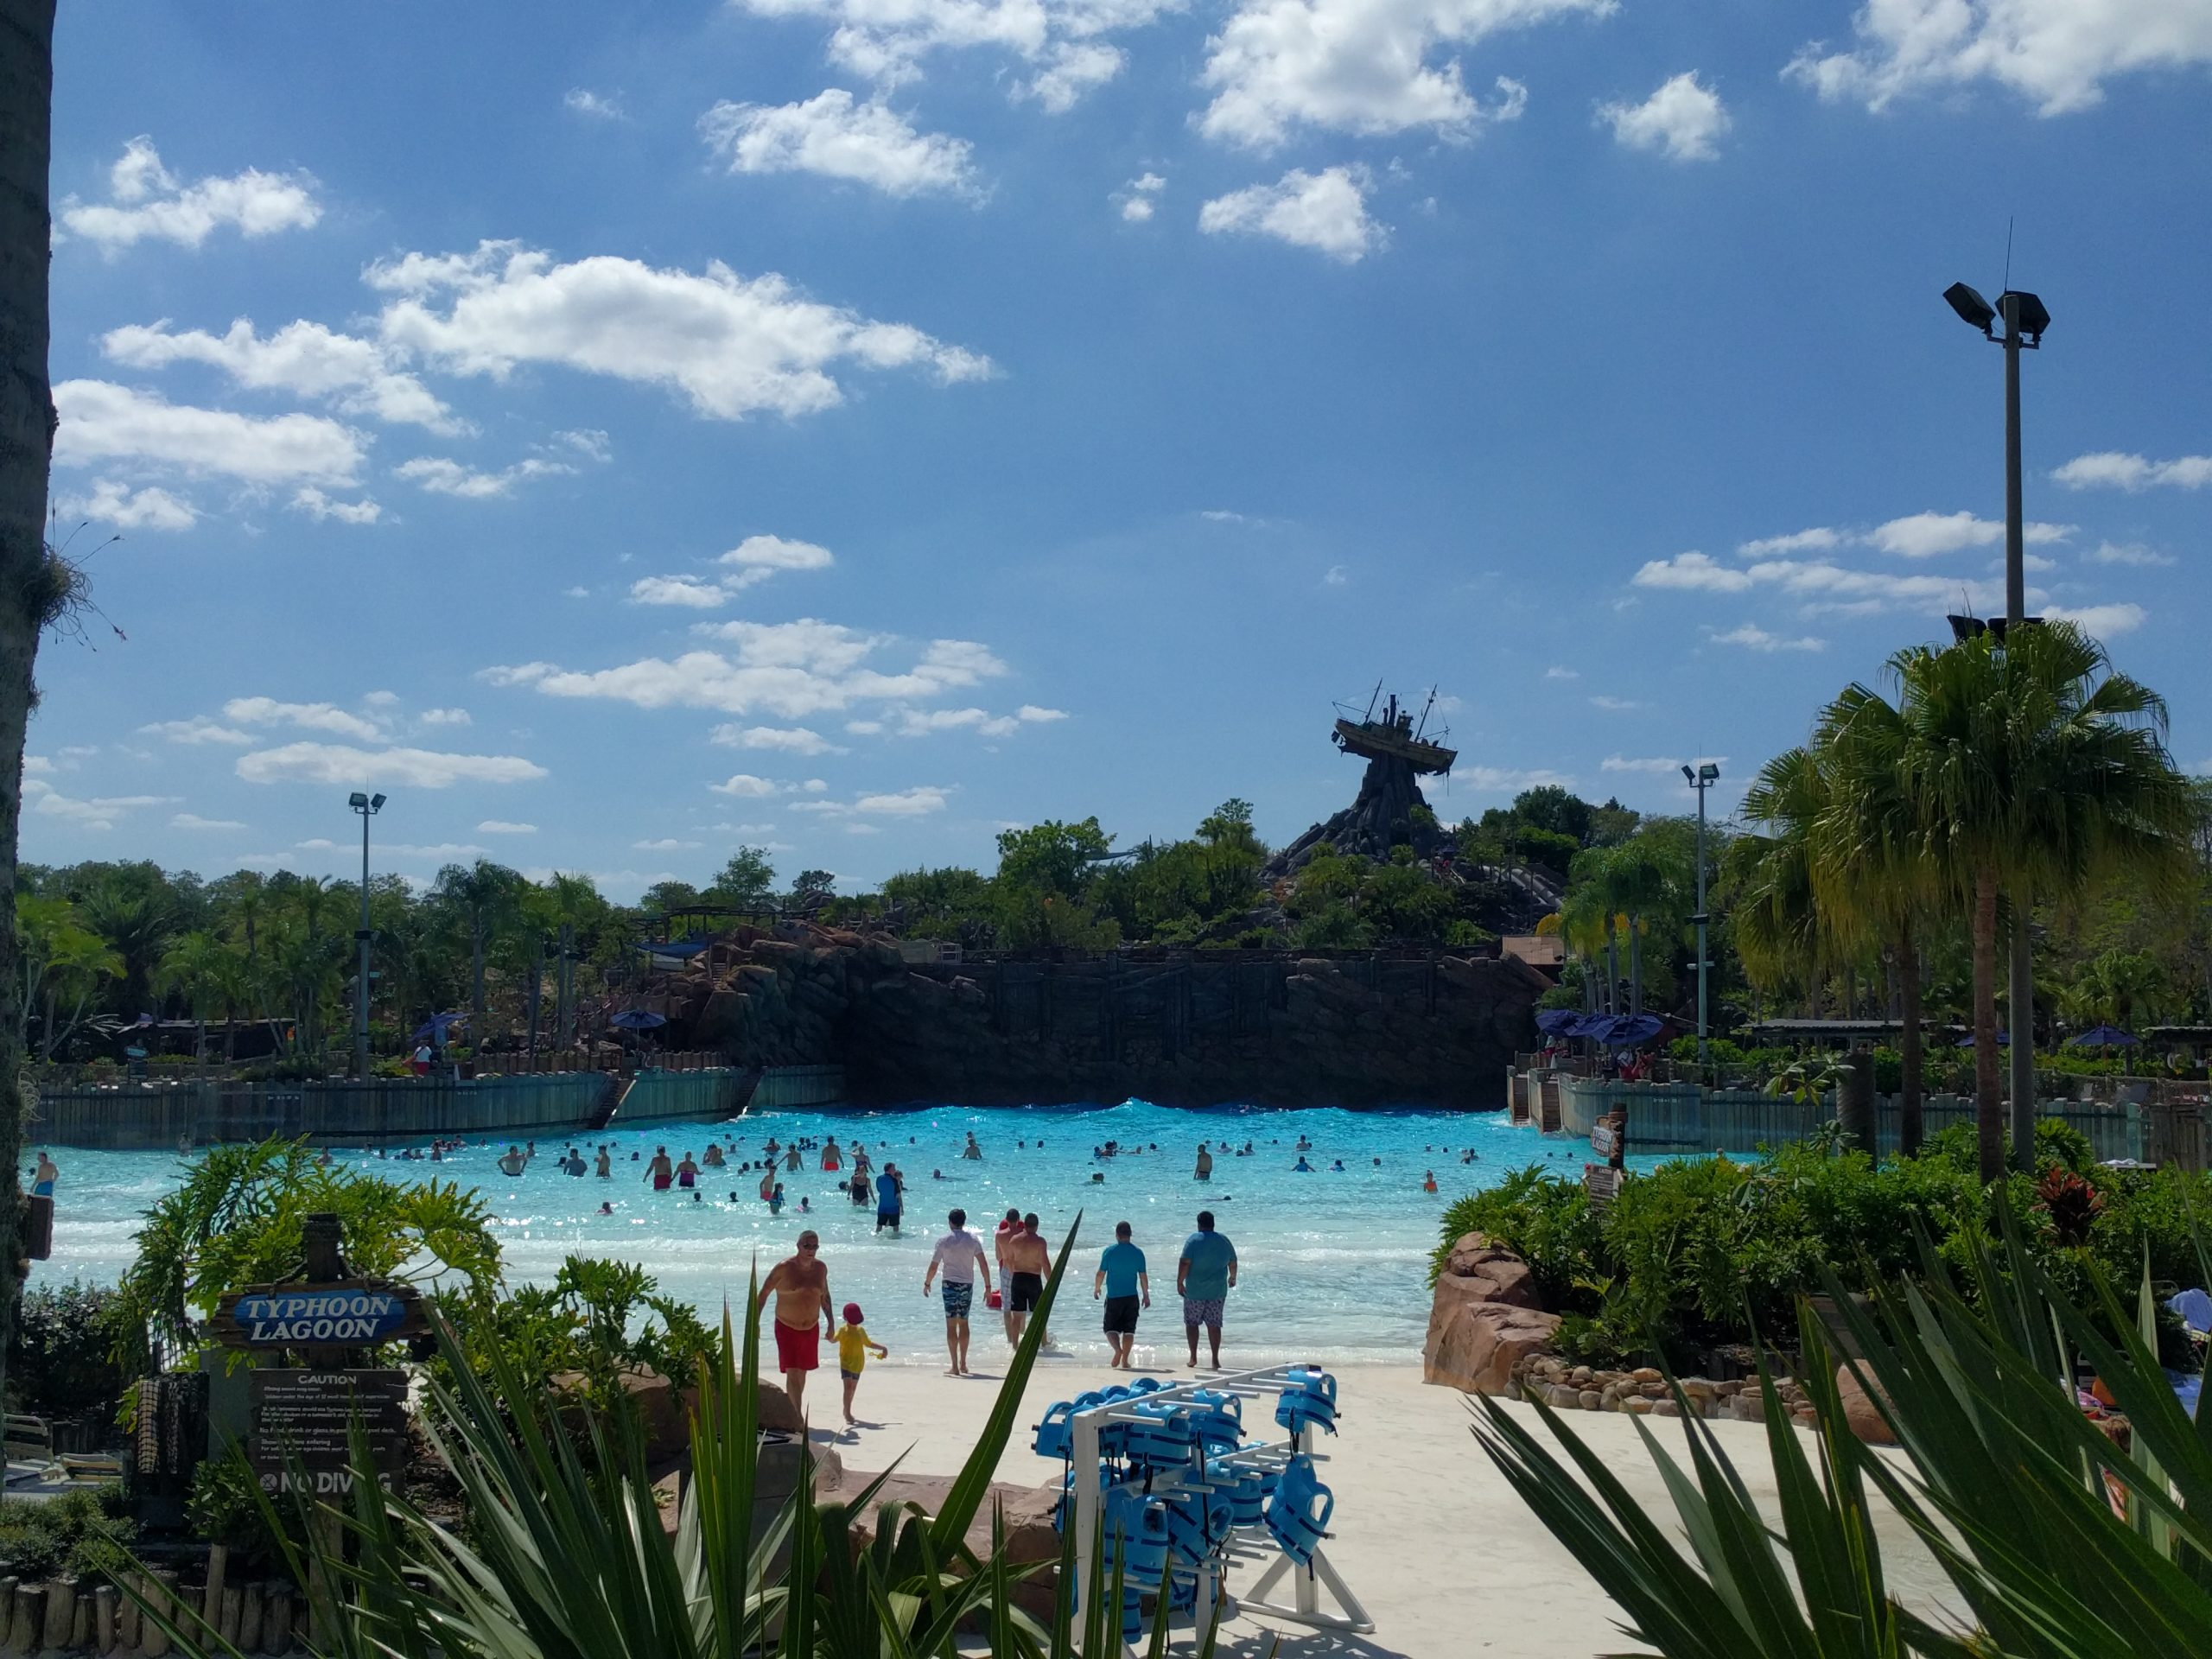 Typhoon Lagoon-Amazing Theme Park In Orlando